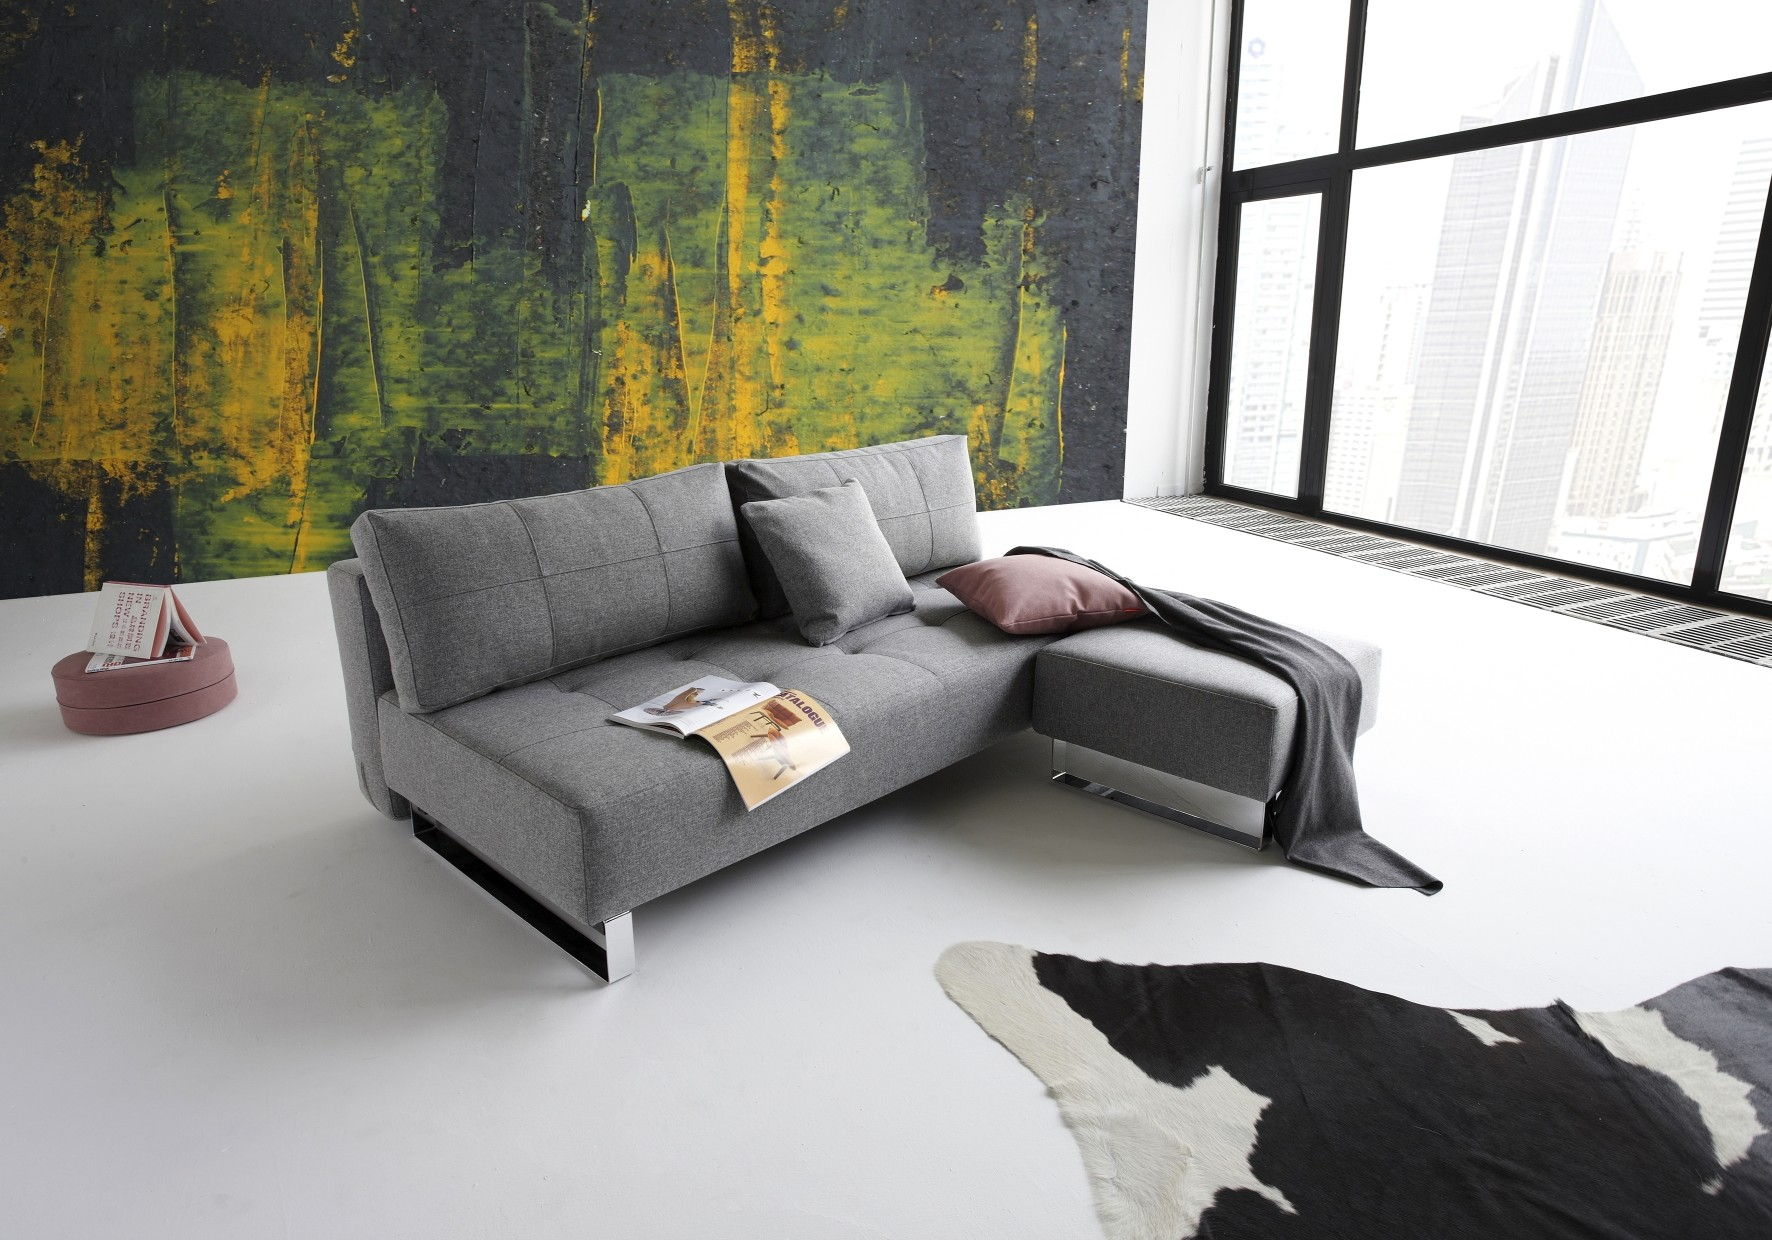 Innovation Slaapbank Supremax Deluxe Excess Lounger - Twist 563 - Charcoal